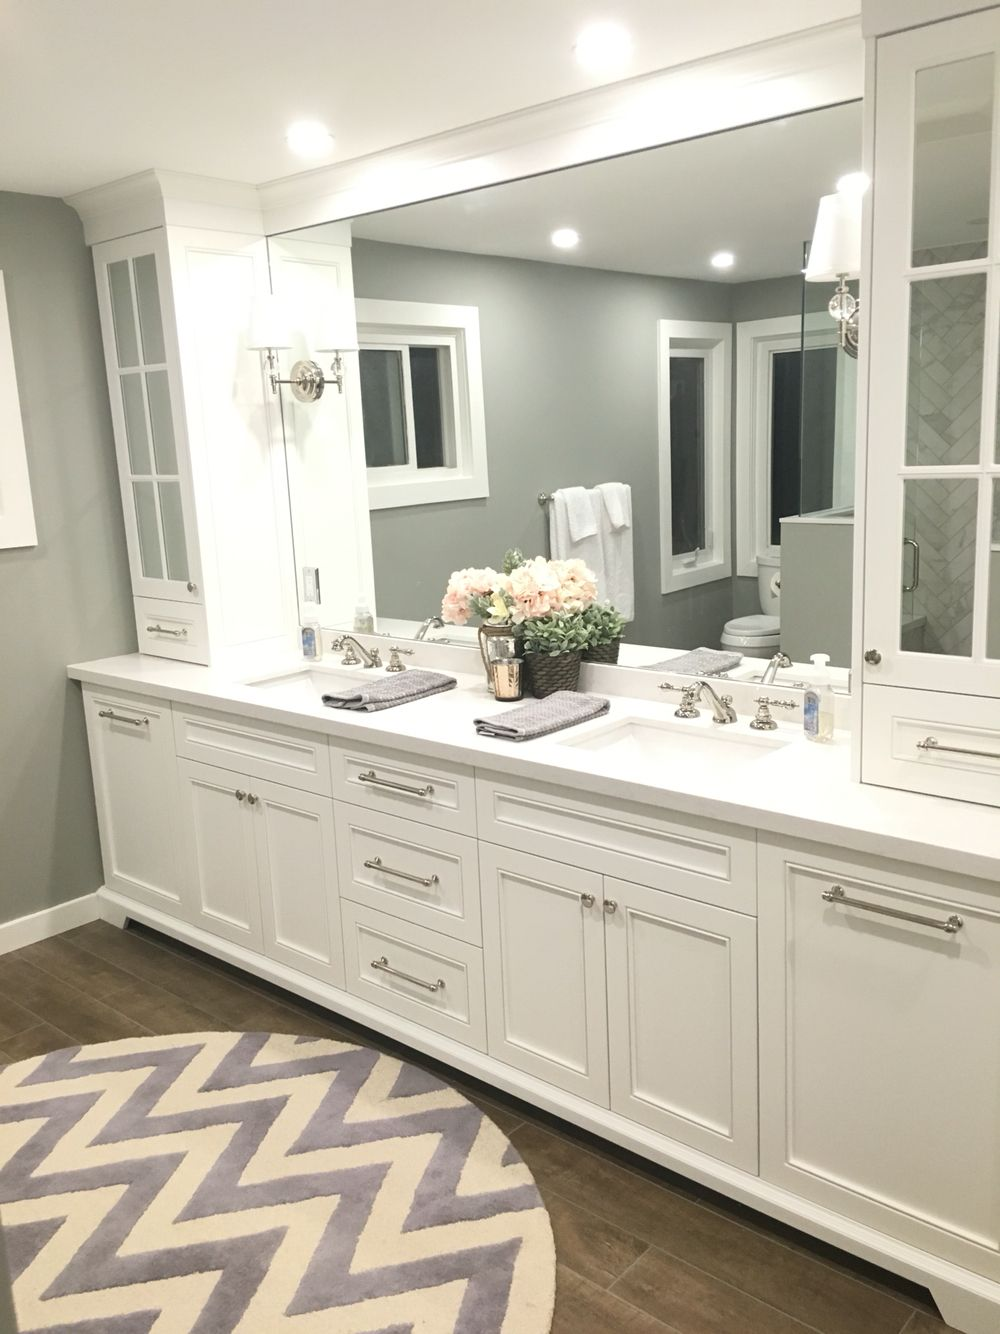 Just Got a Little Space? These Small Bathroom Designs Will ...